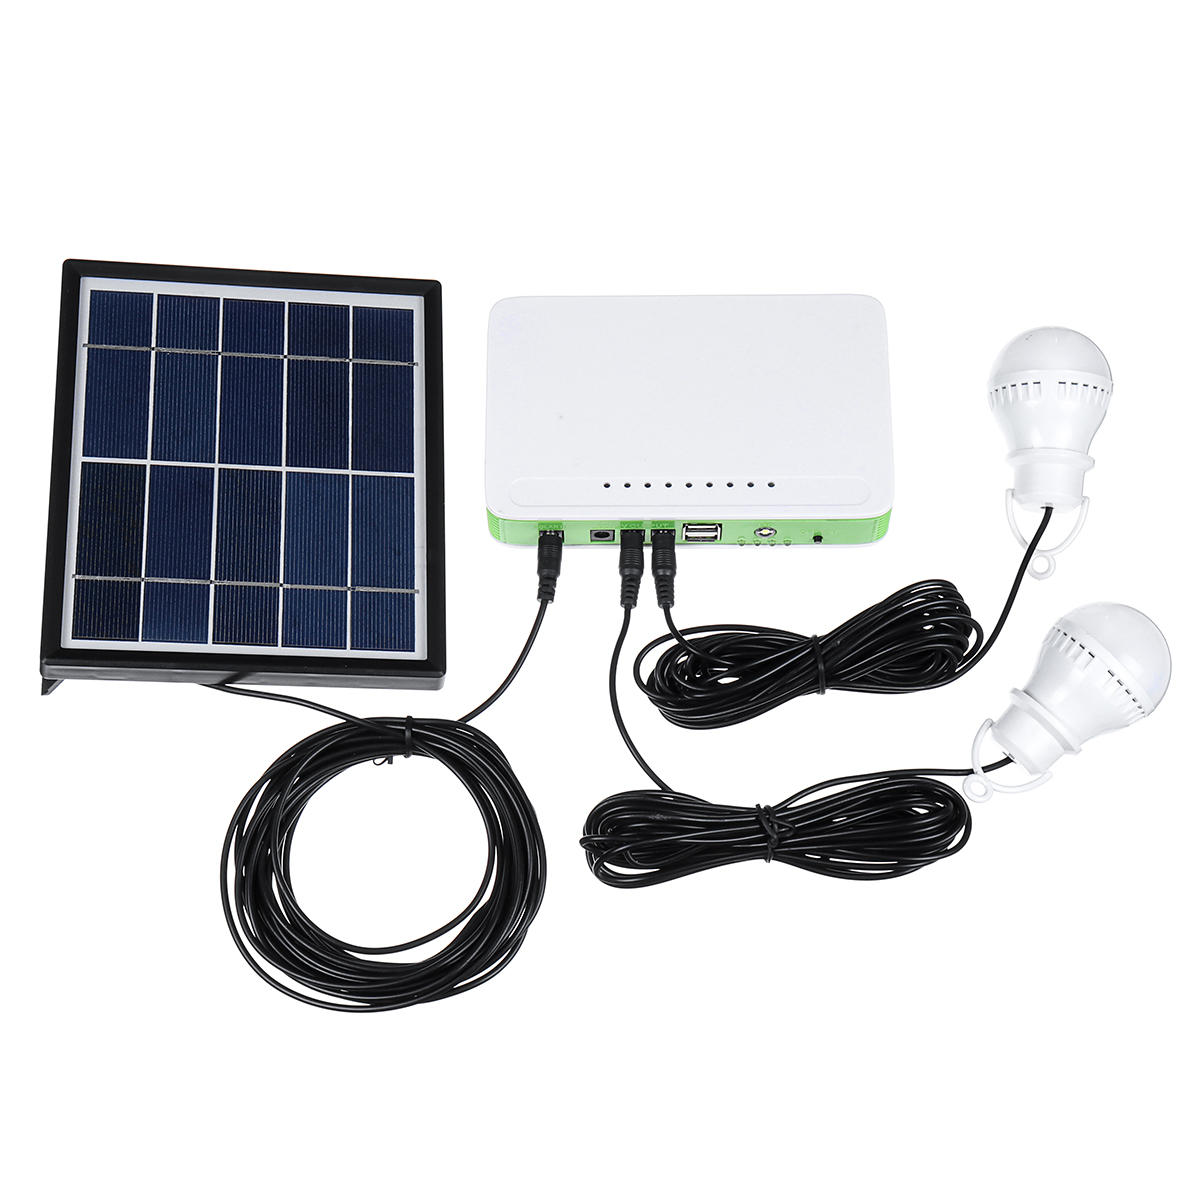 Solar Powered System Generator Panel Power Storage Charger Outdoor USB LED Bulb Lamp фото